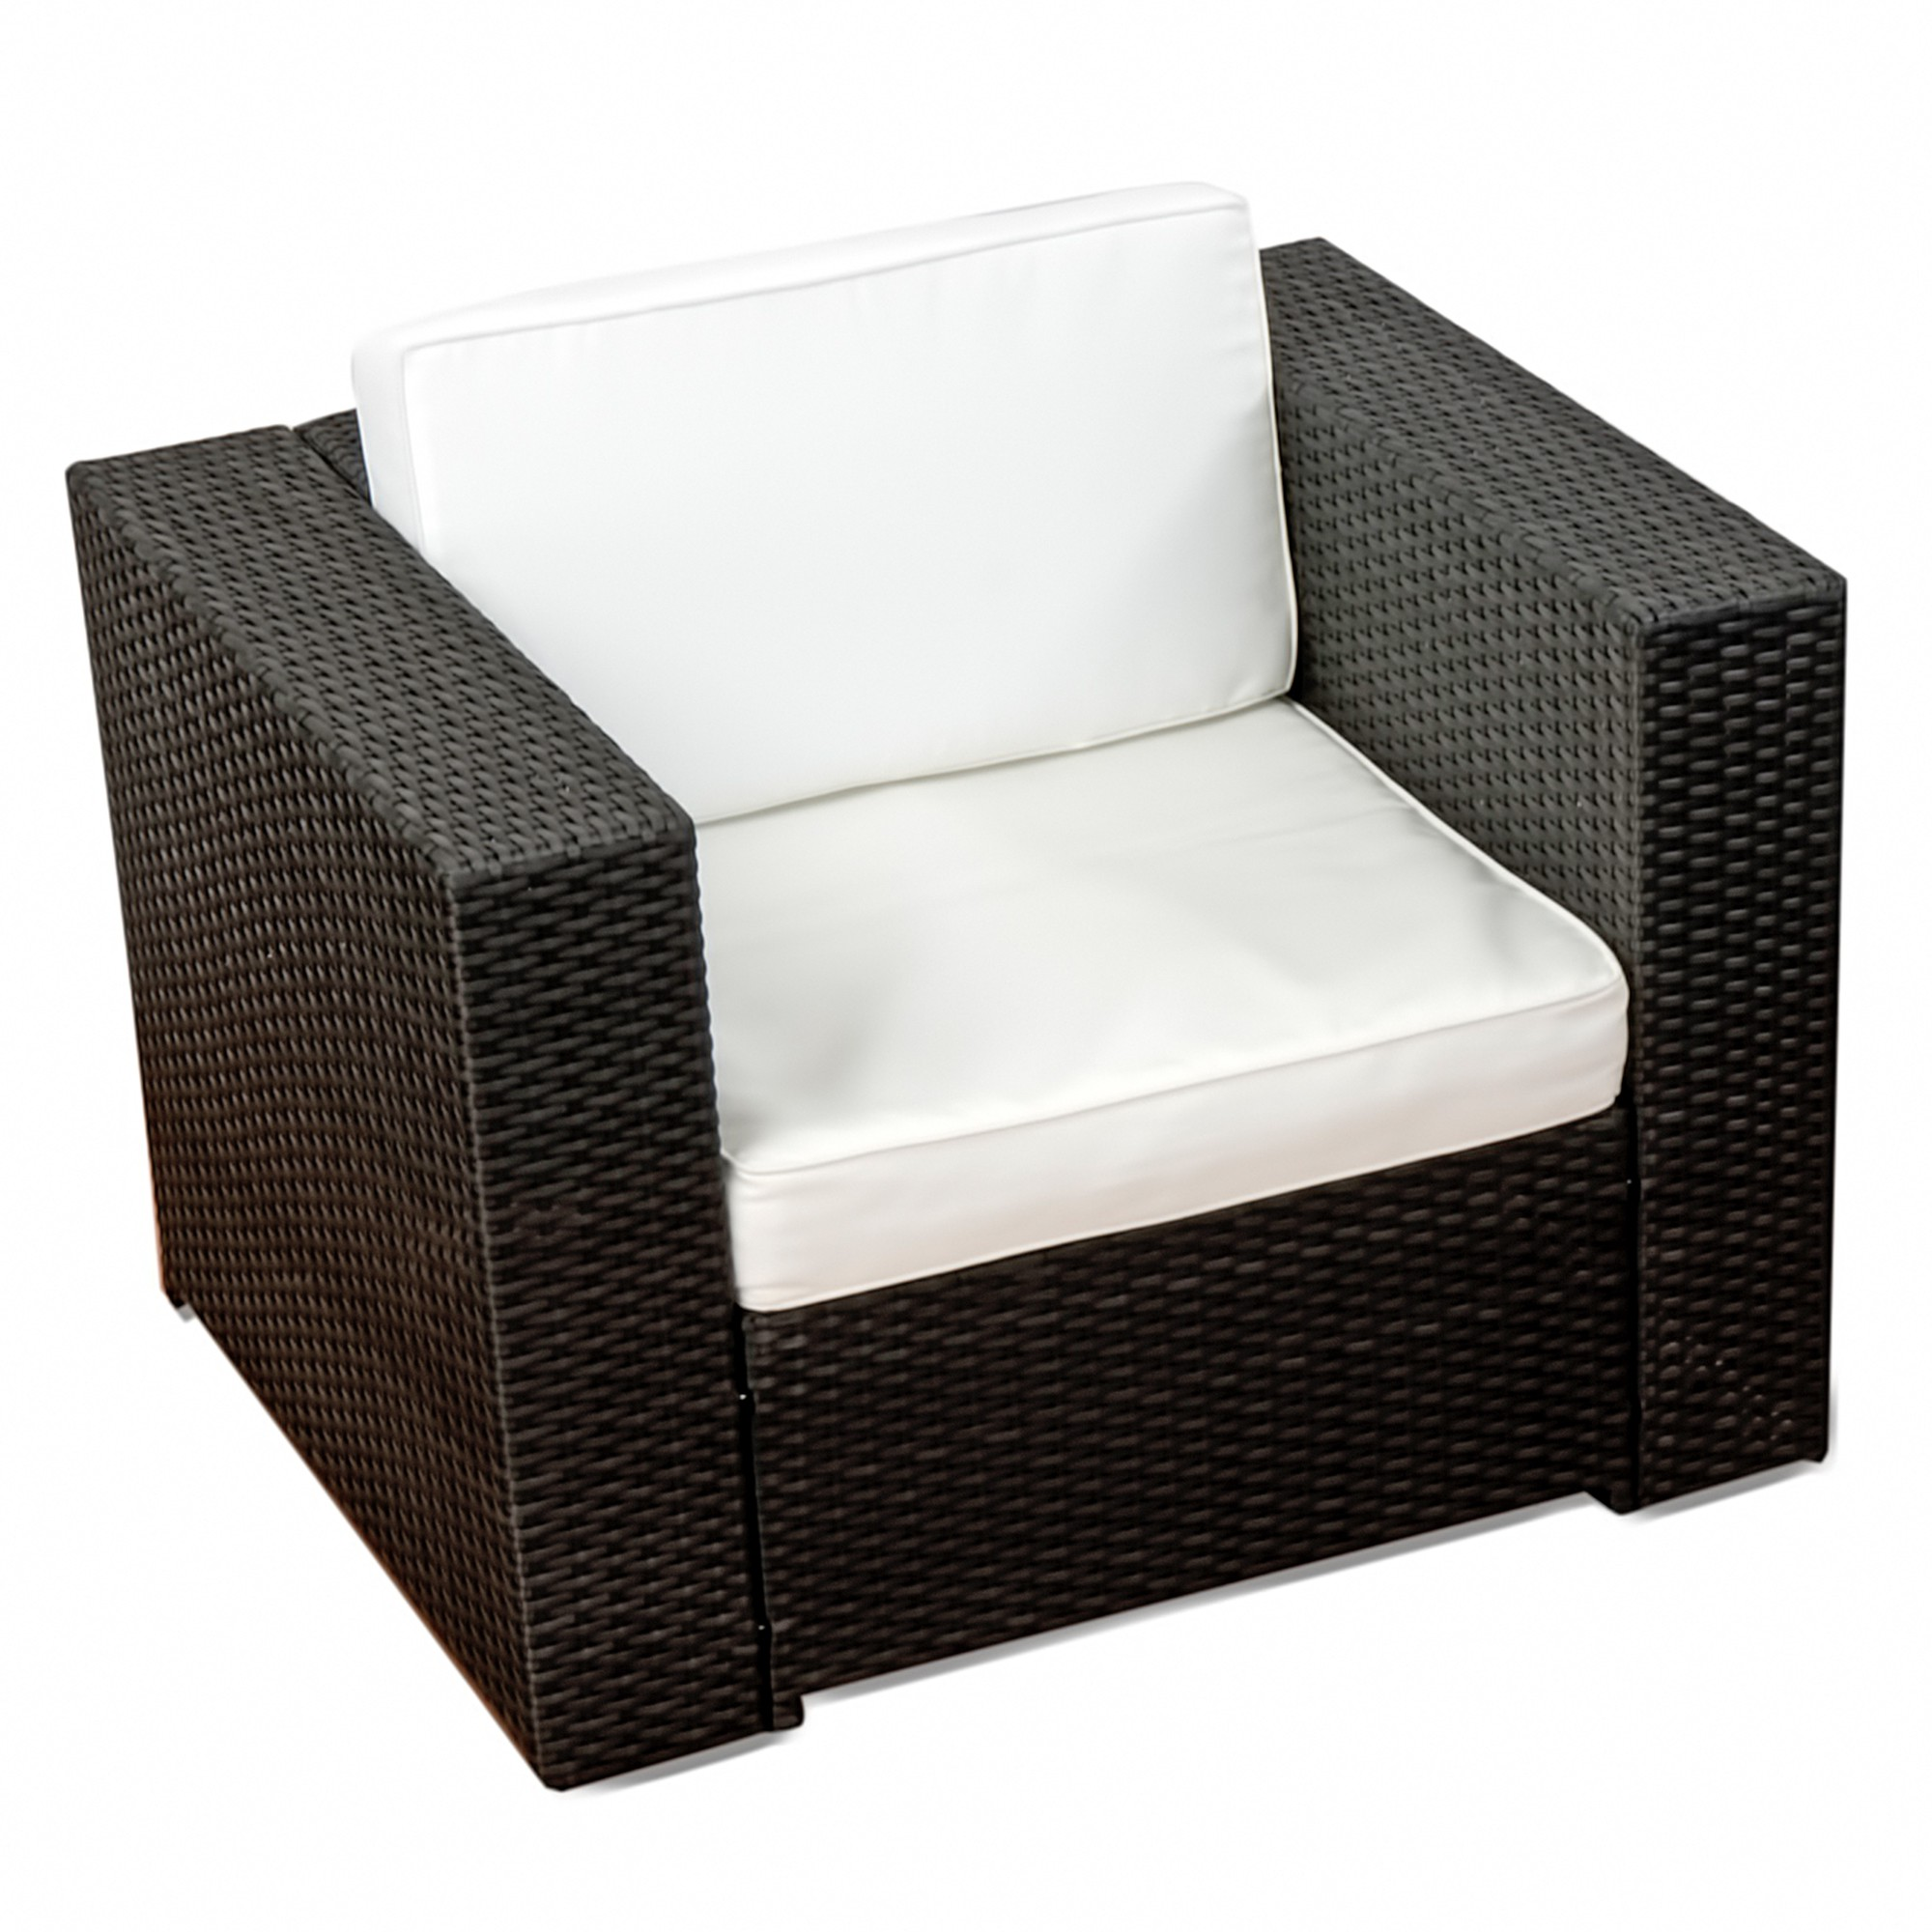 lounge sessel outdoor g nstig outdoor lounge sessel kaufen. Black Bedroom Furniture Sets. Home Design Ideas